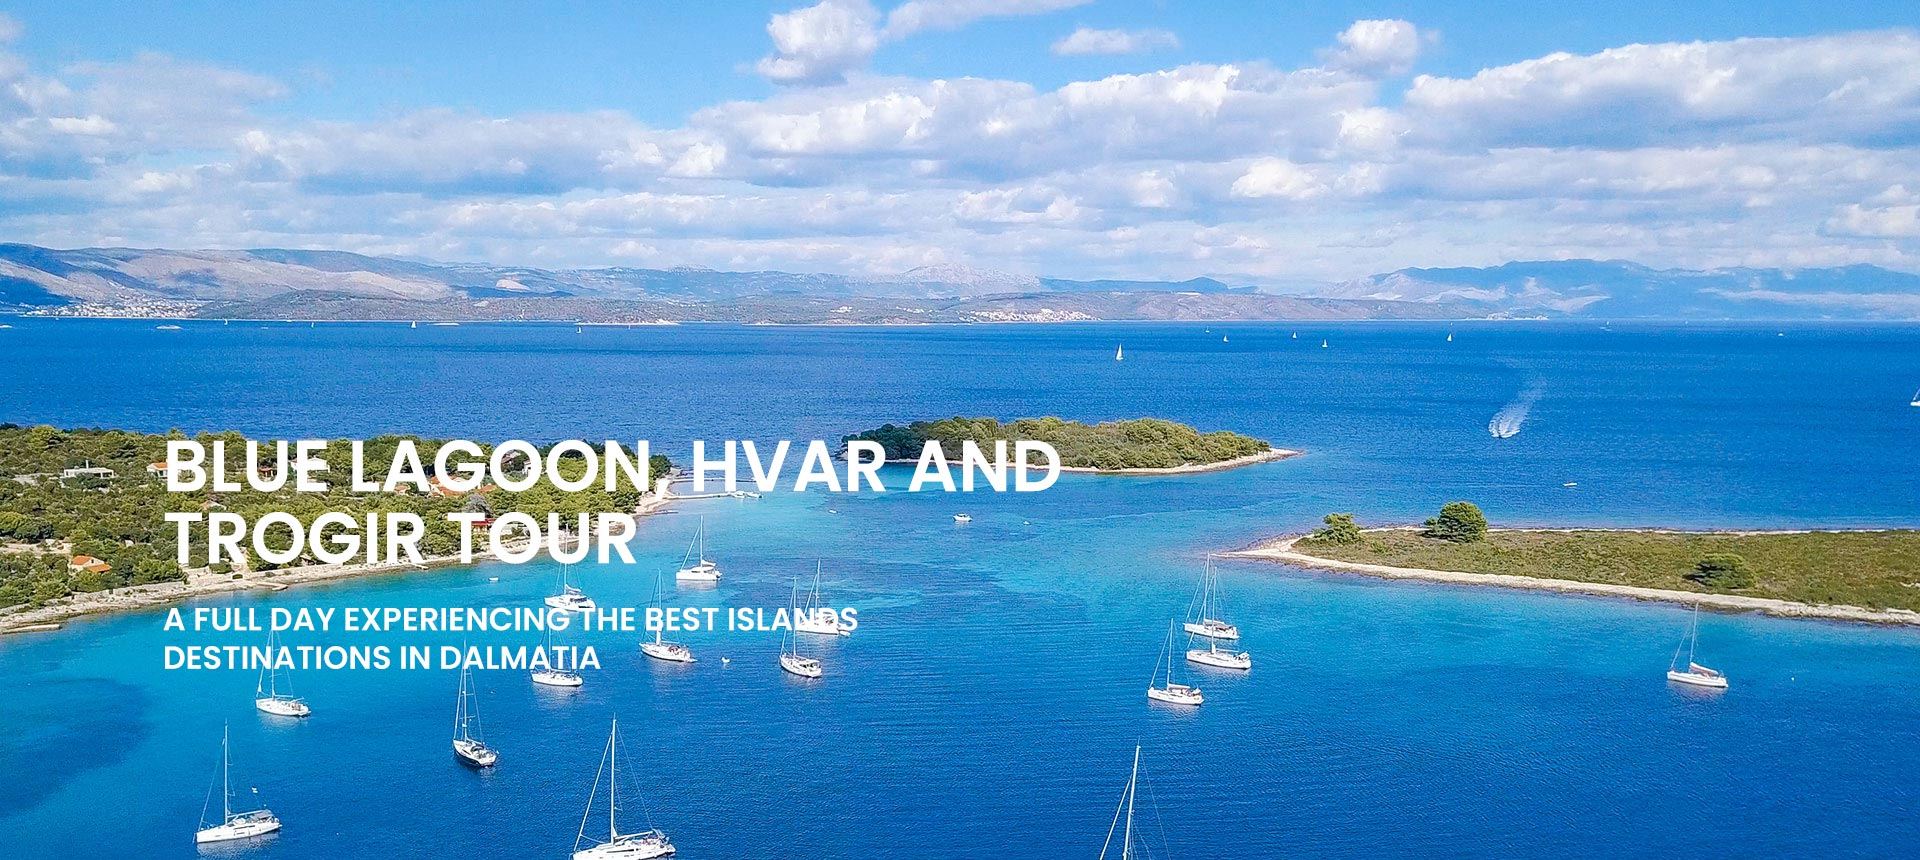 Private island hopping tour